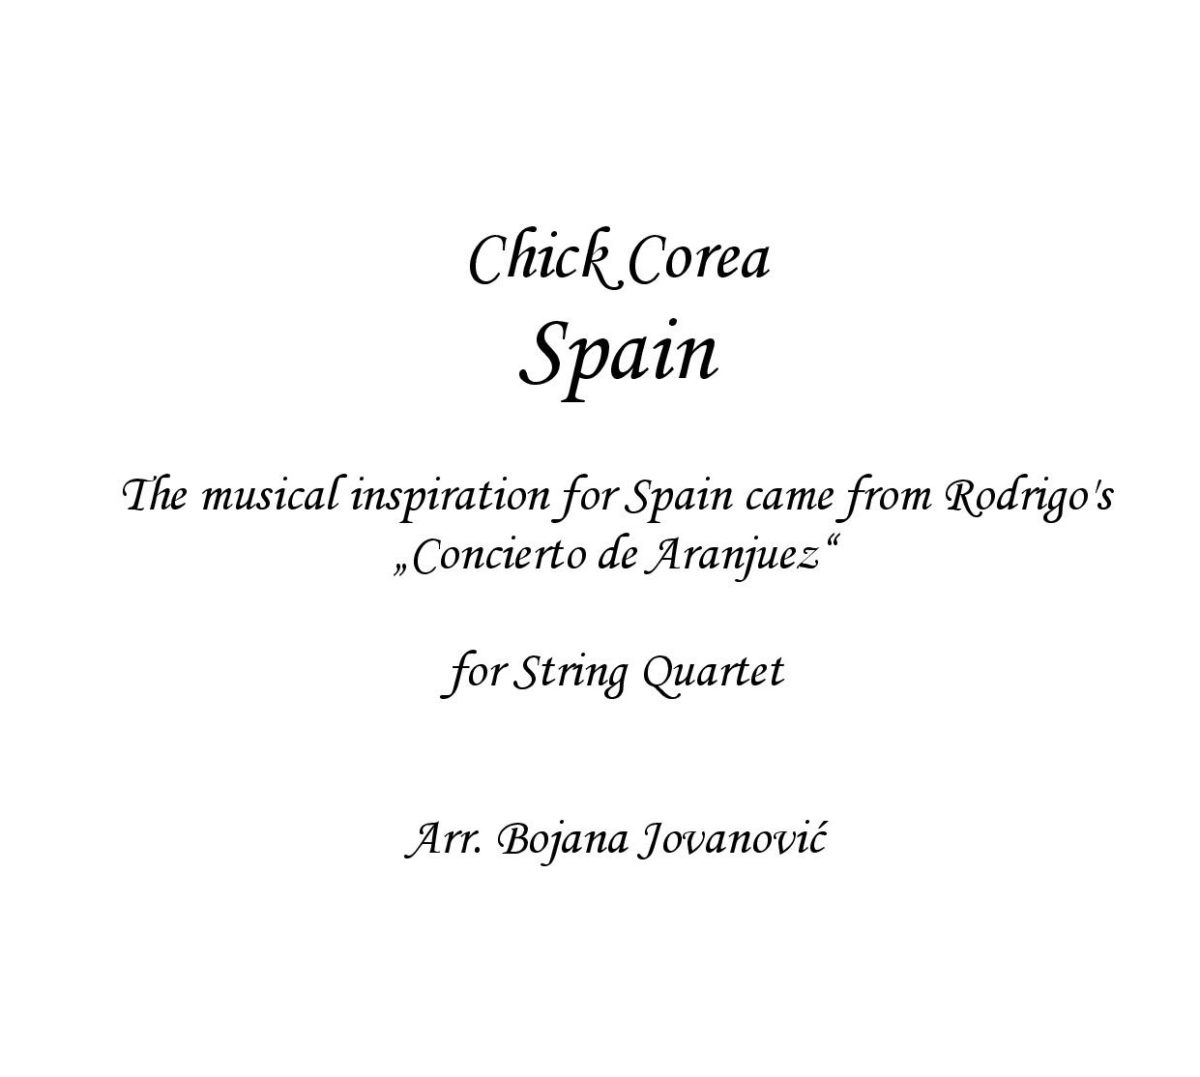 Spain (Chick Corea) - Sheet Music